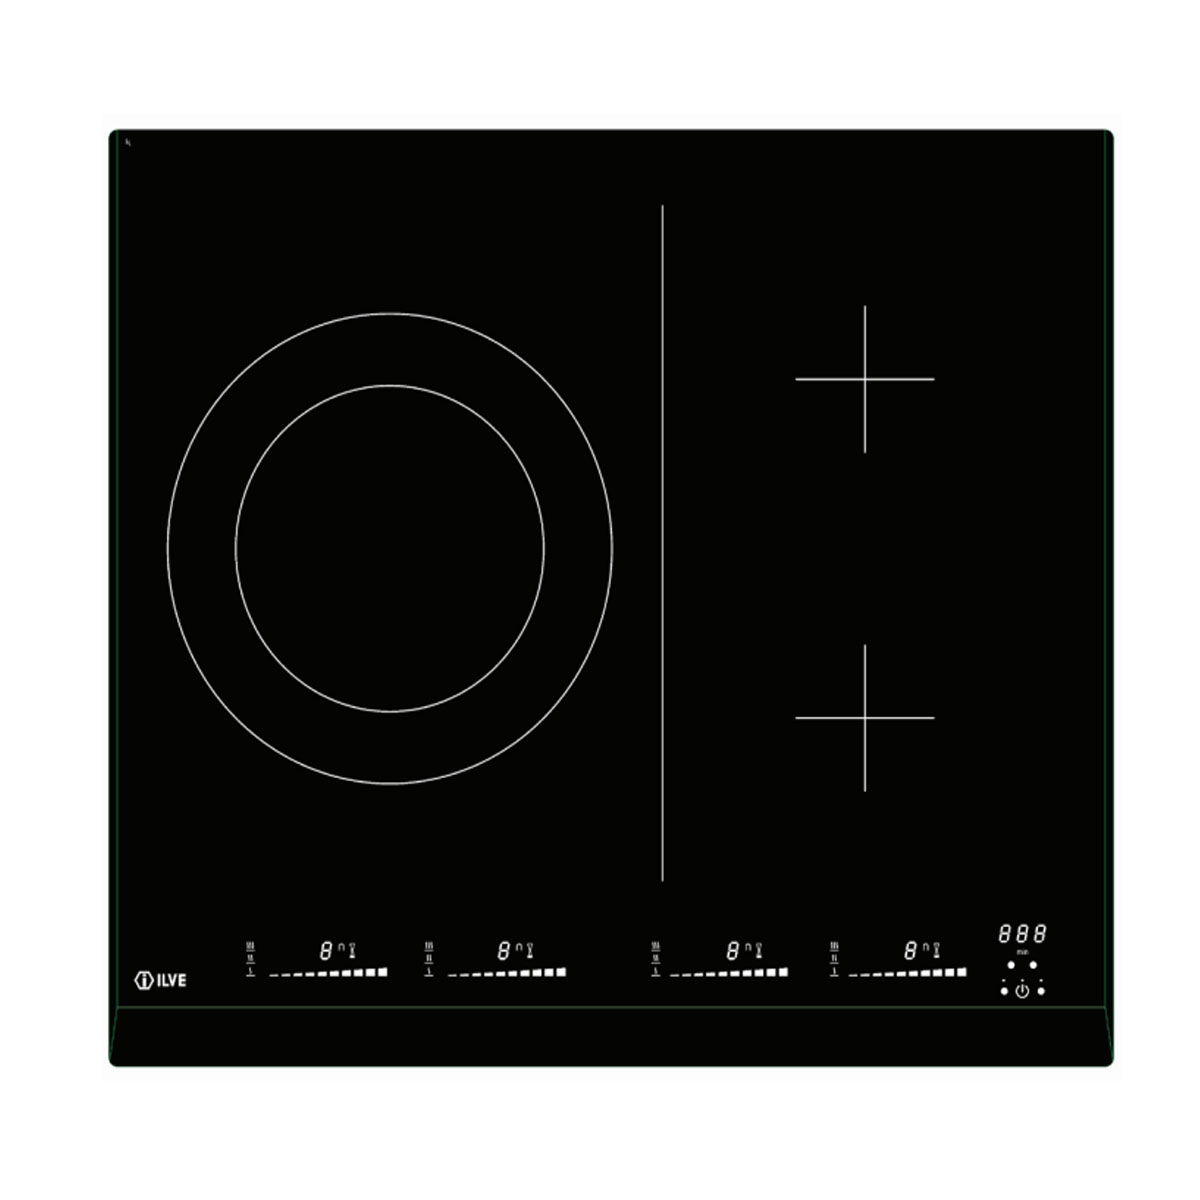 Ilve ILD703G5 Induction Cooktop 34729